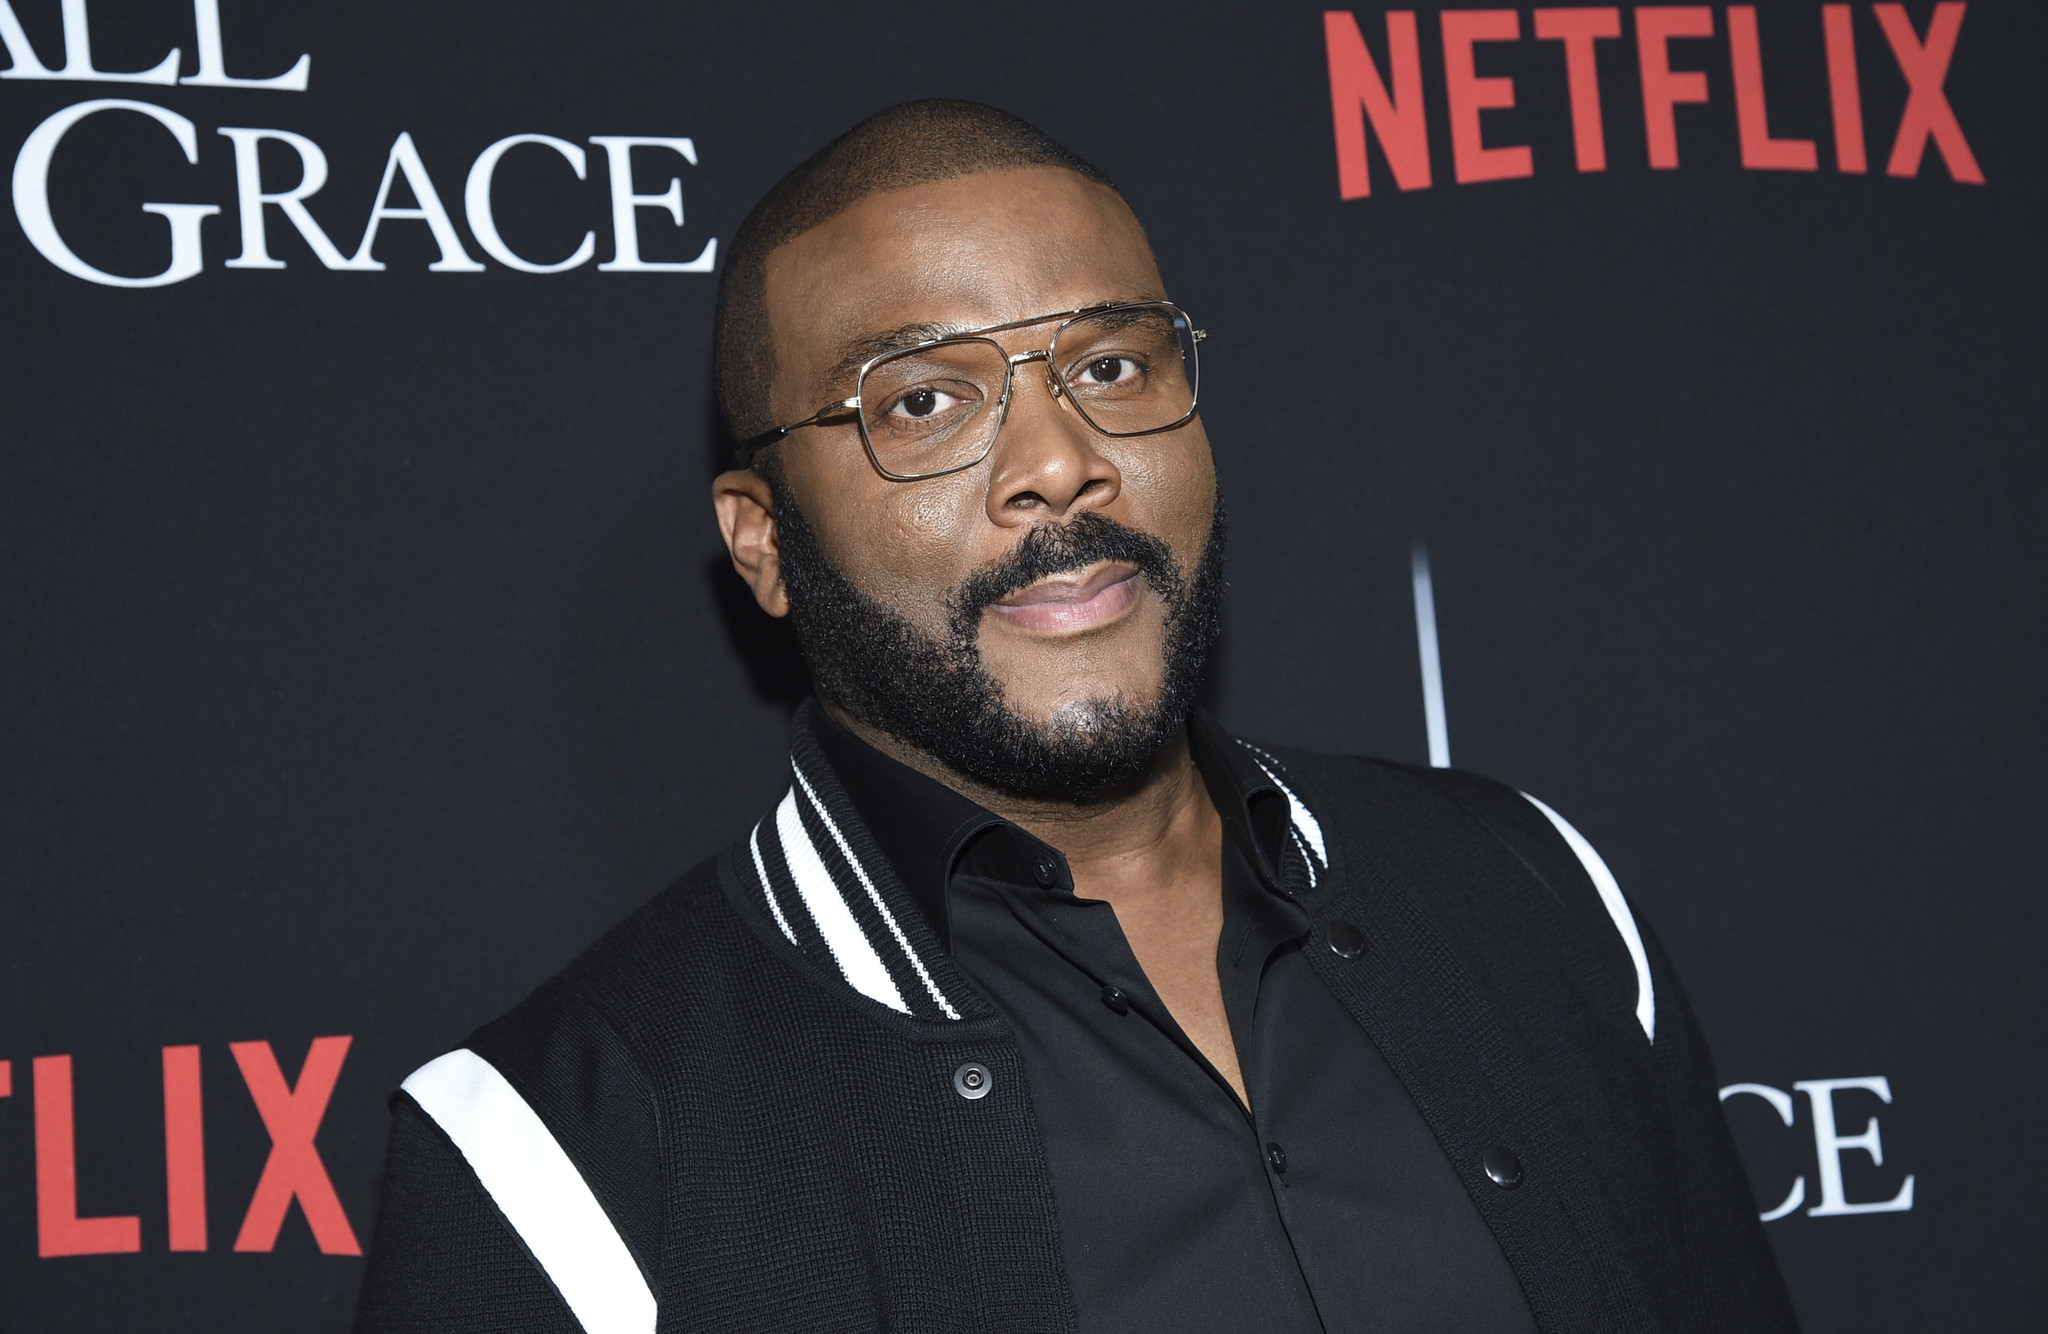 Tyler Perry's nephew found dead in jail cell: report